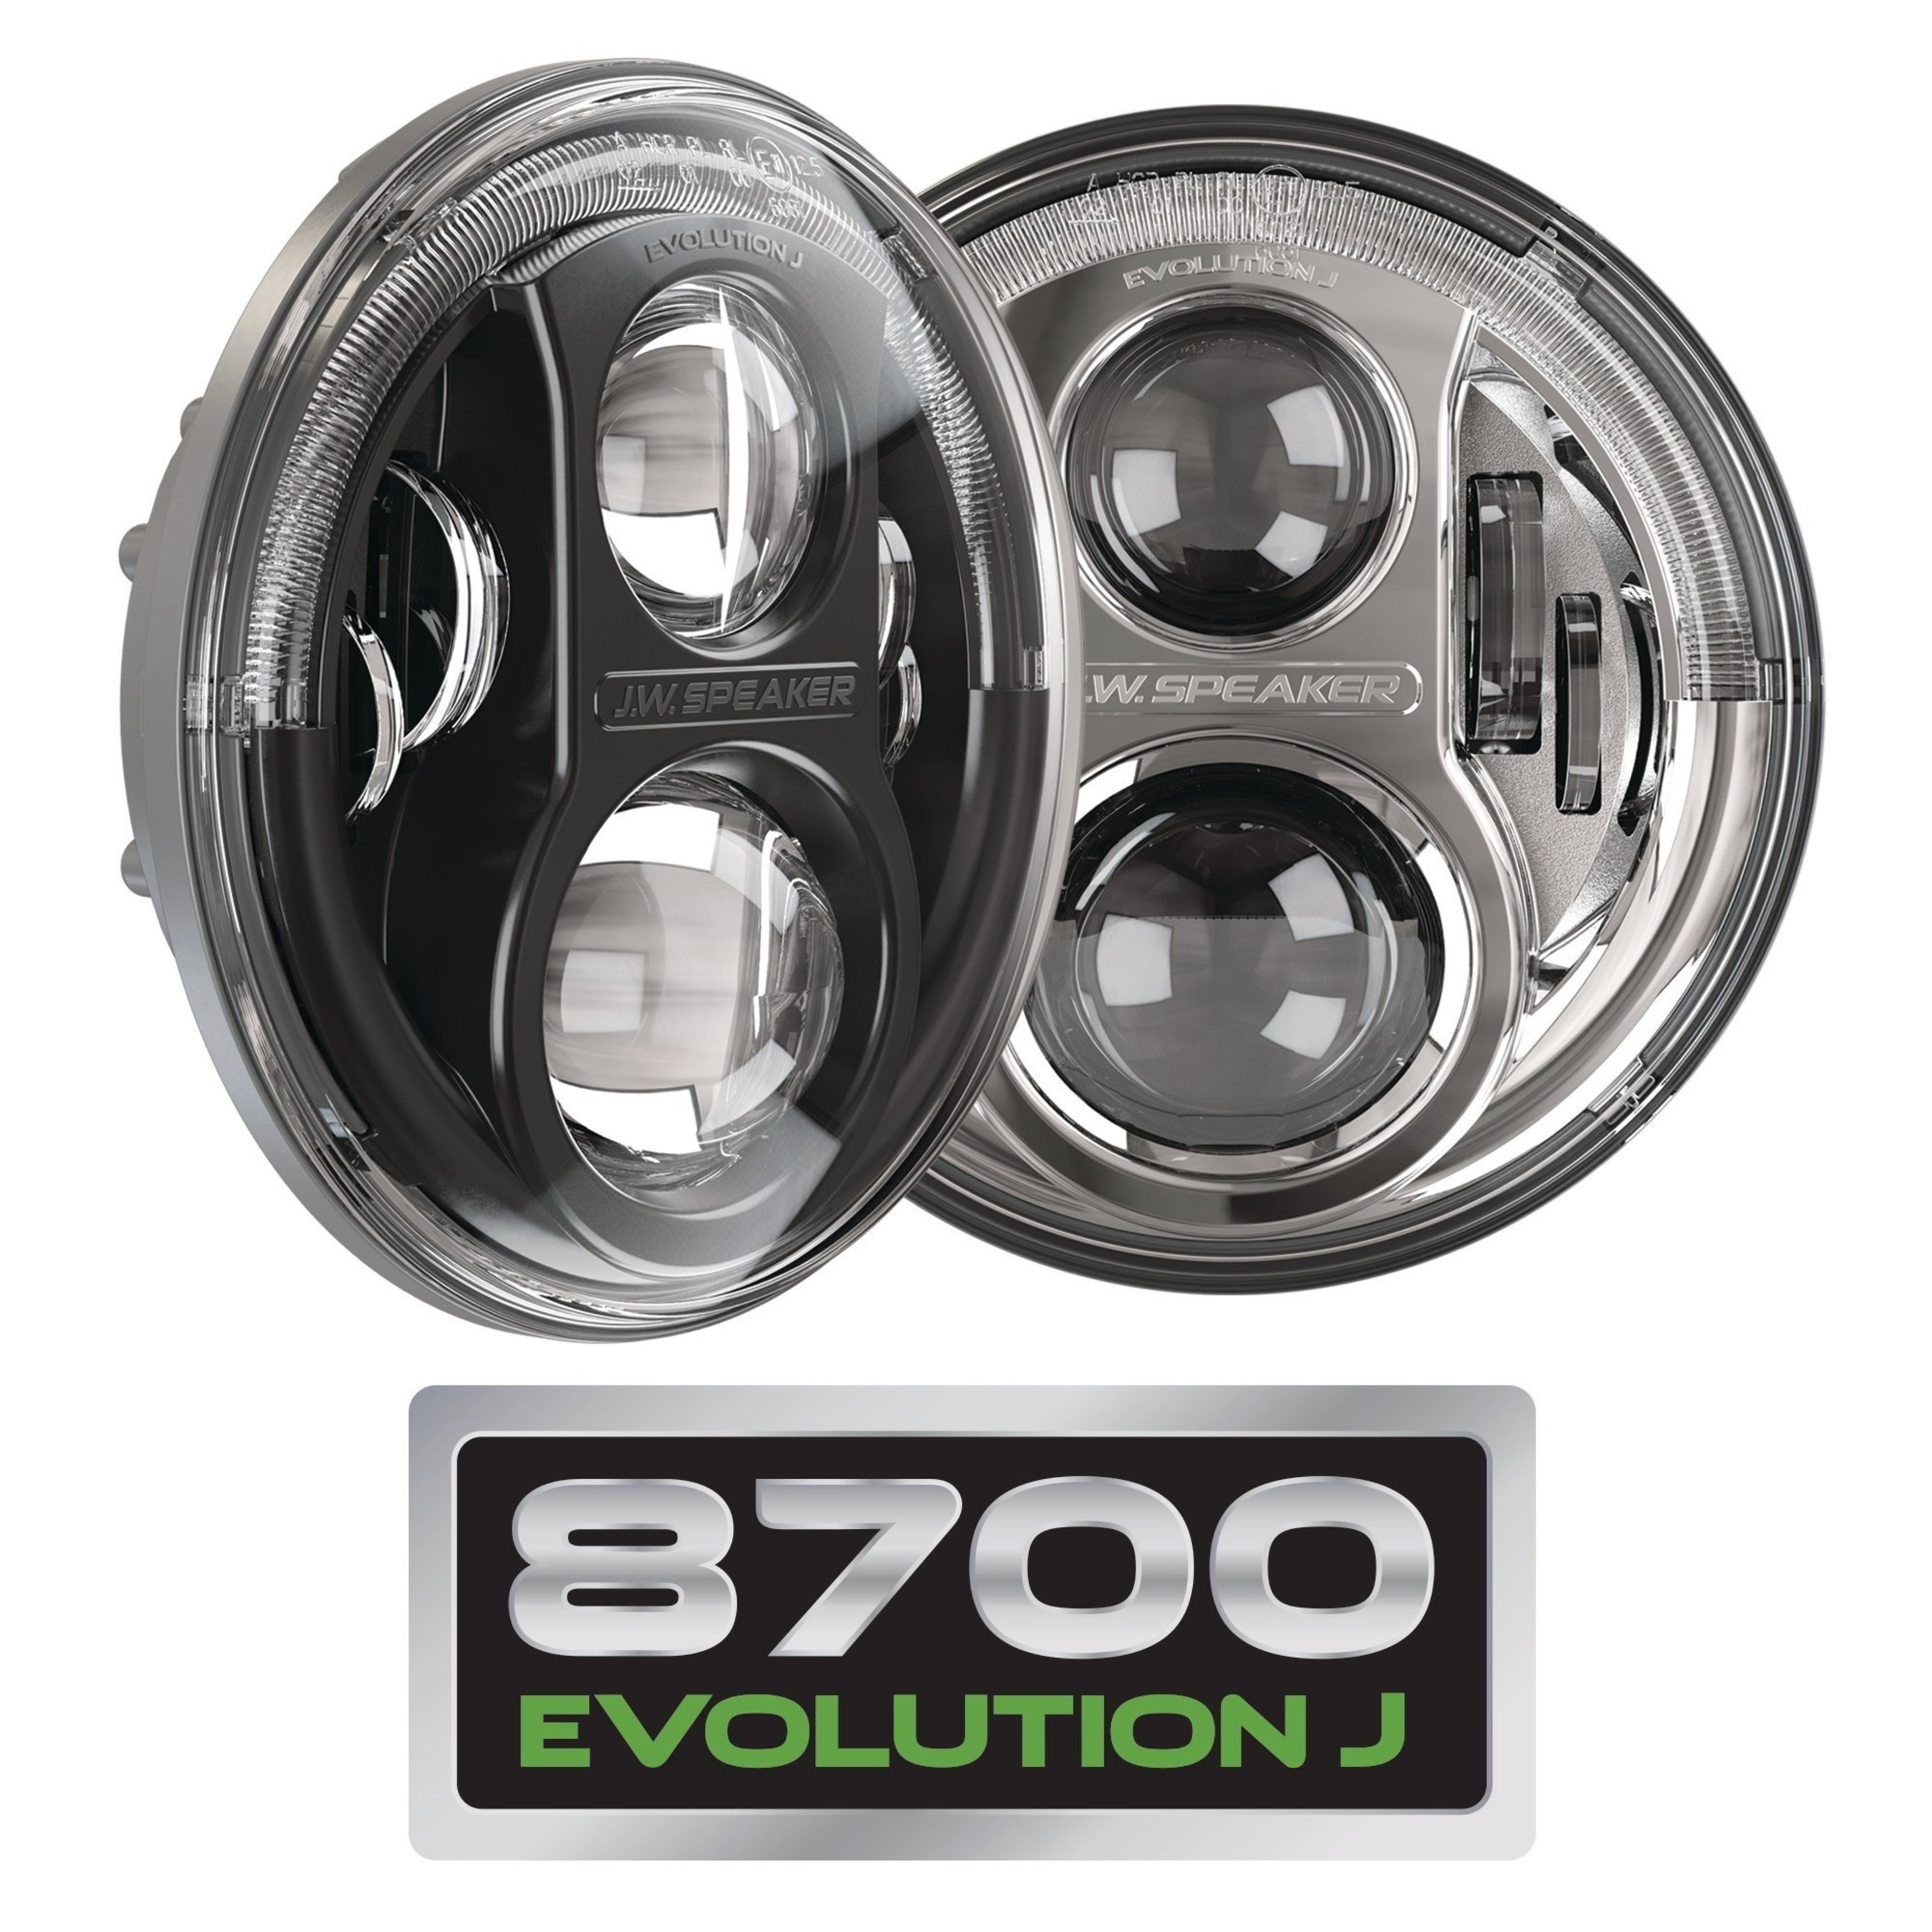 J W  Speaker Announces New Off-Road 4x4 LED Lighting Products